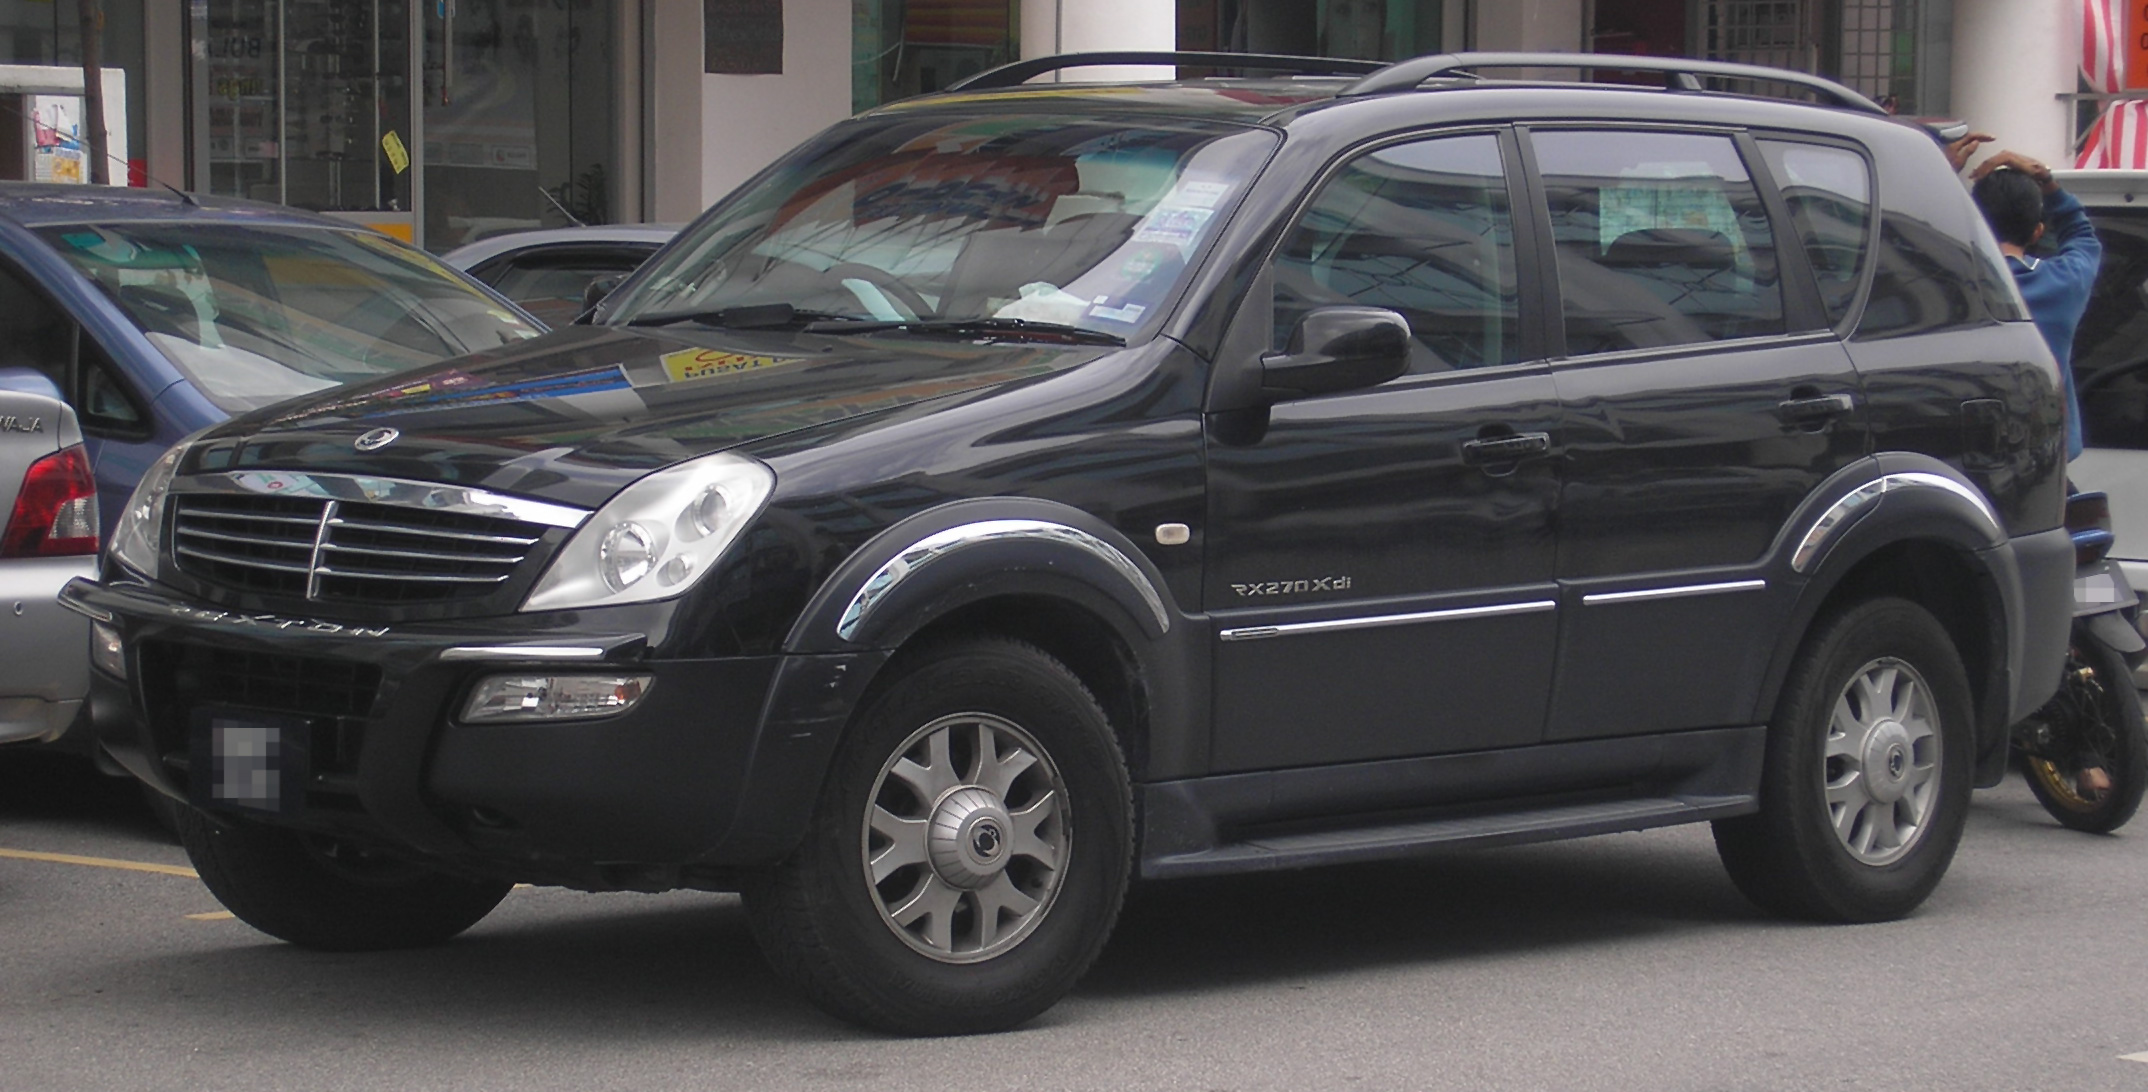 ssangyong pictures #10